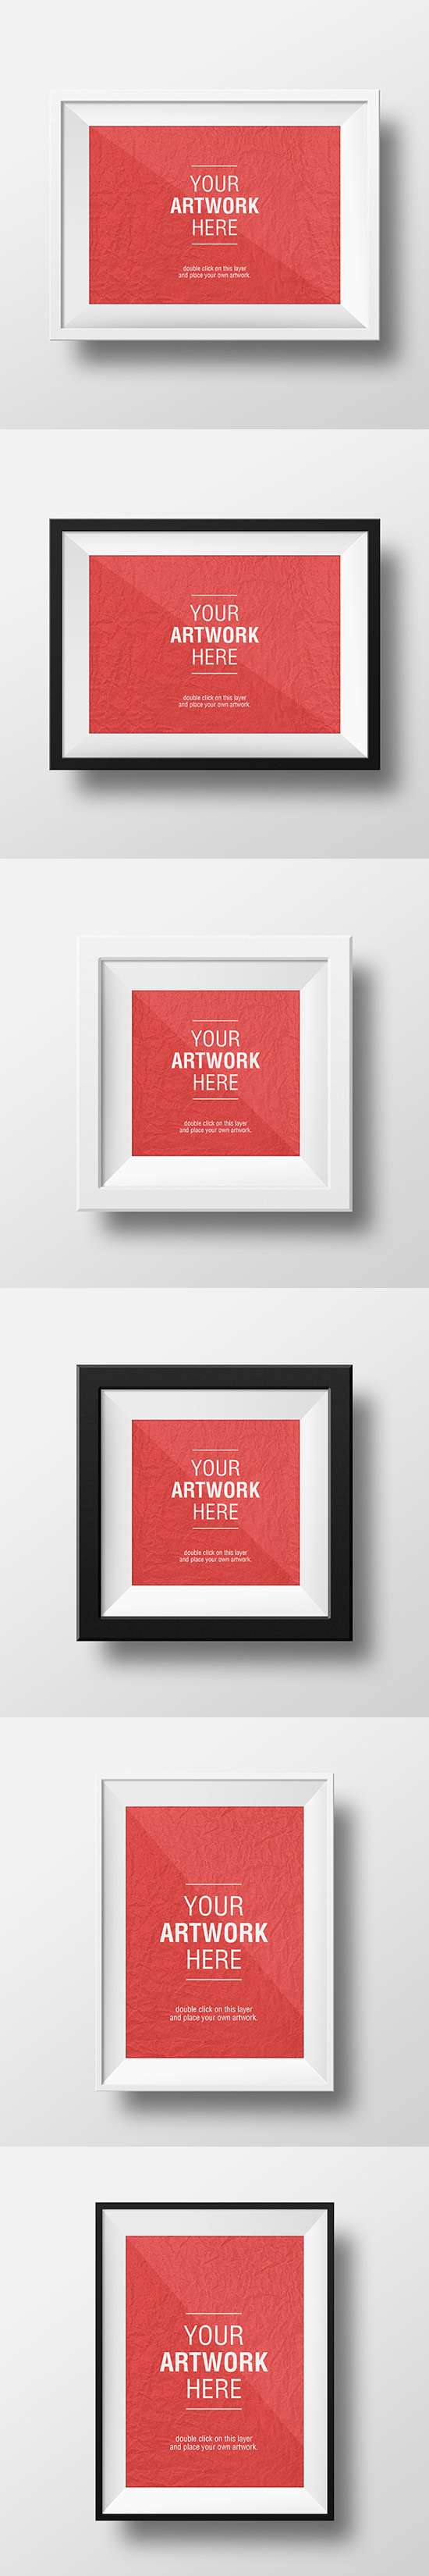 artwork_frame_psd_mockups